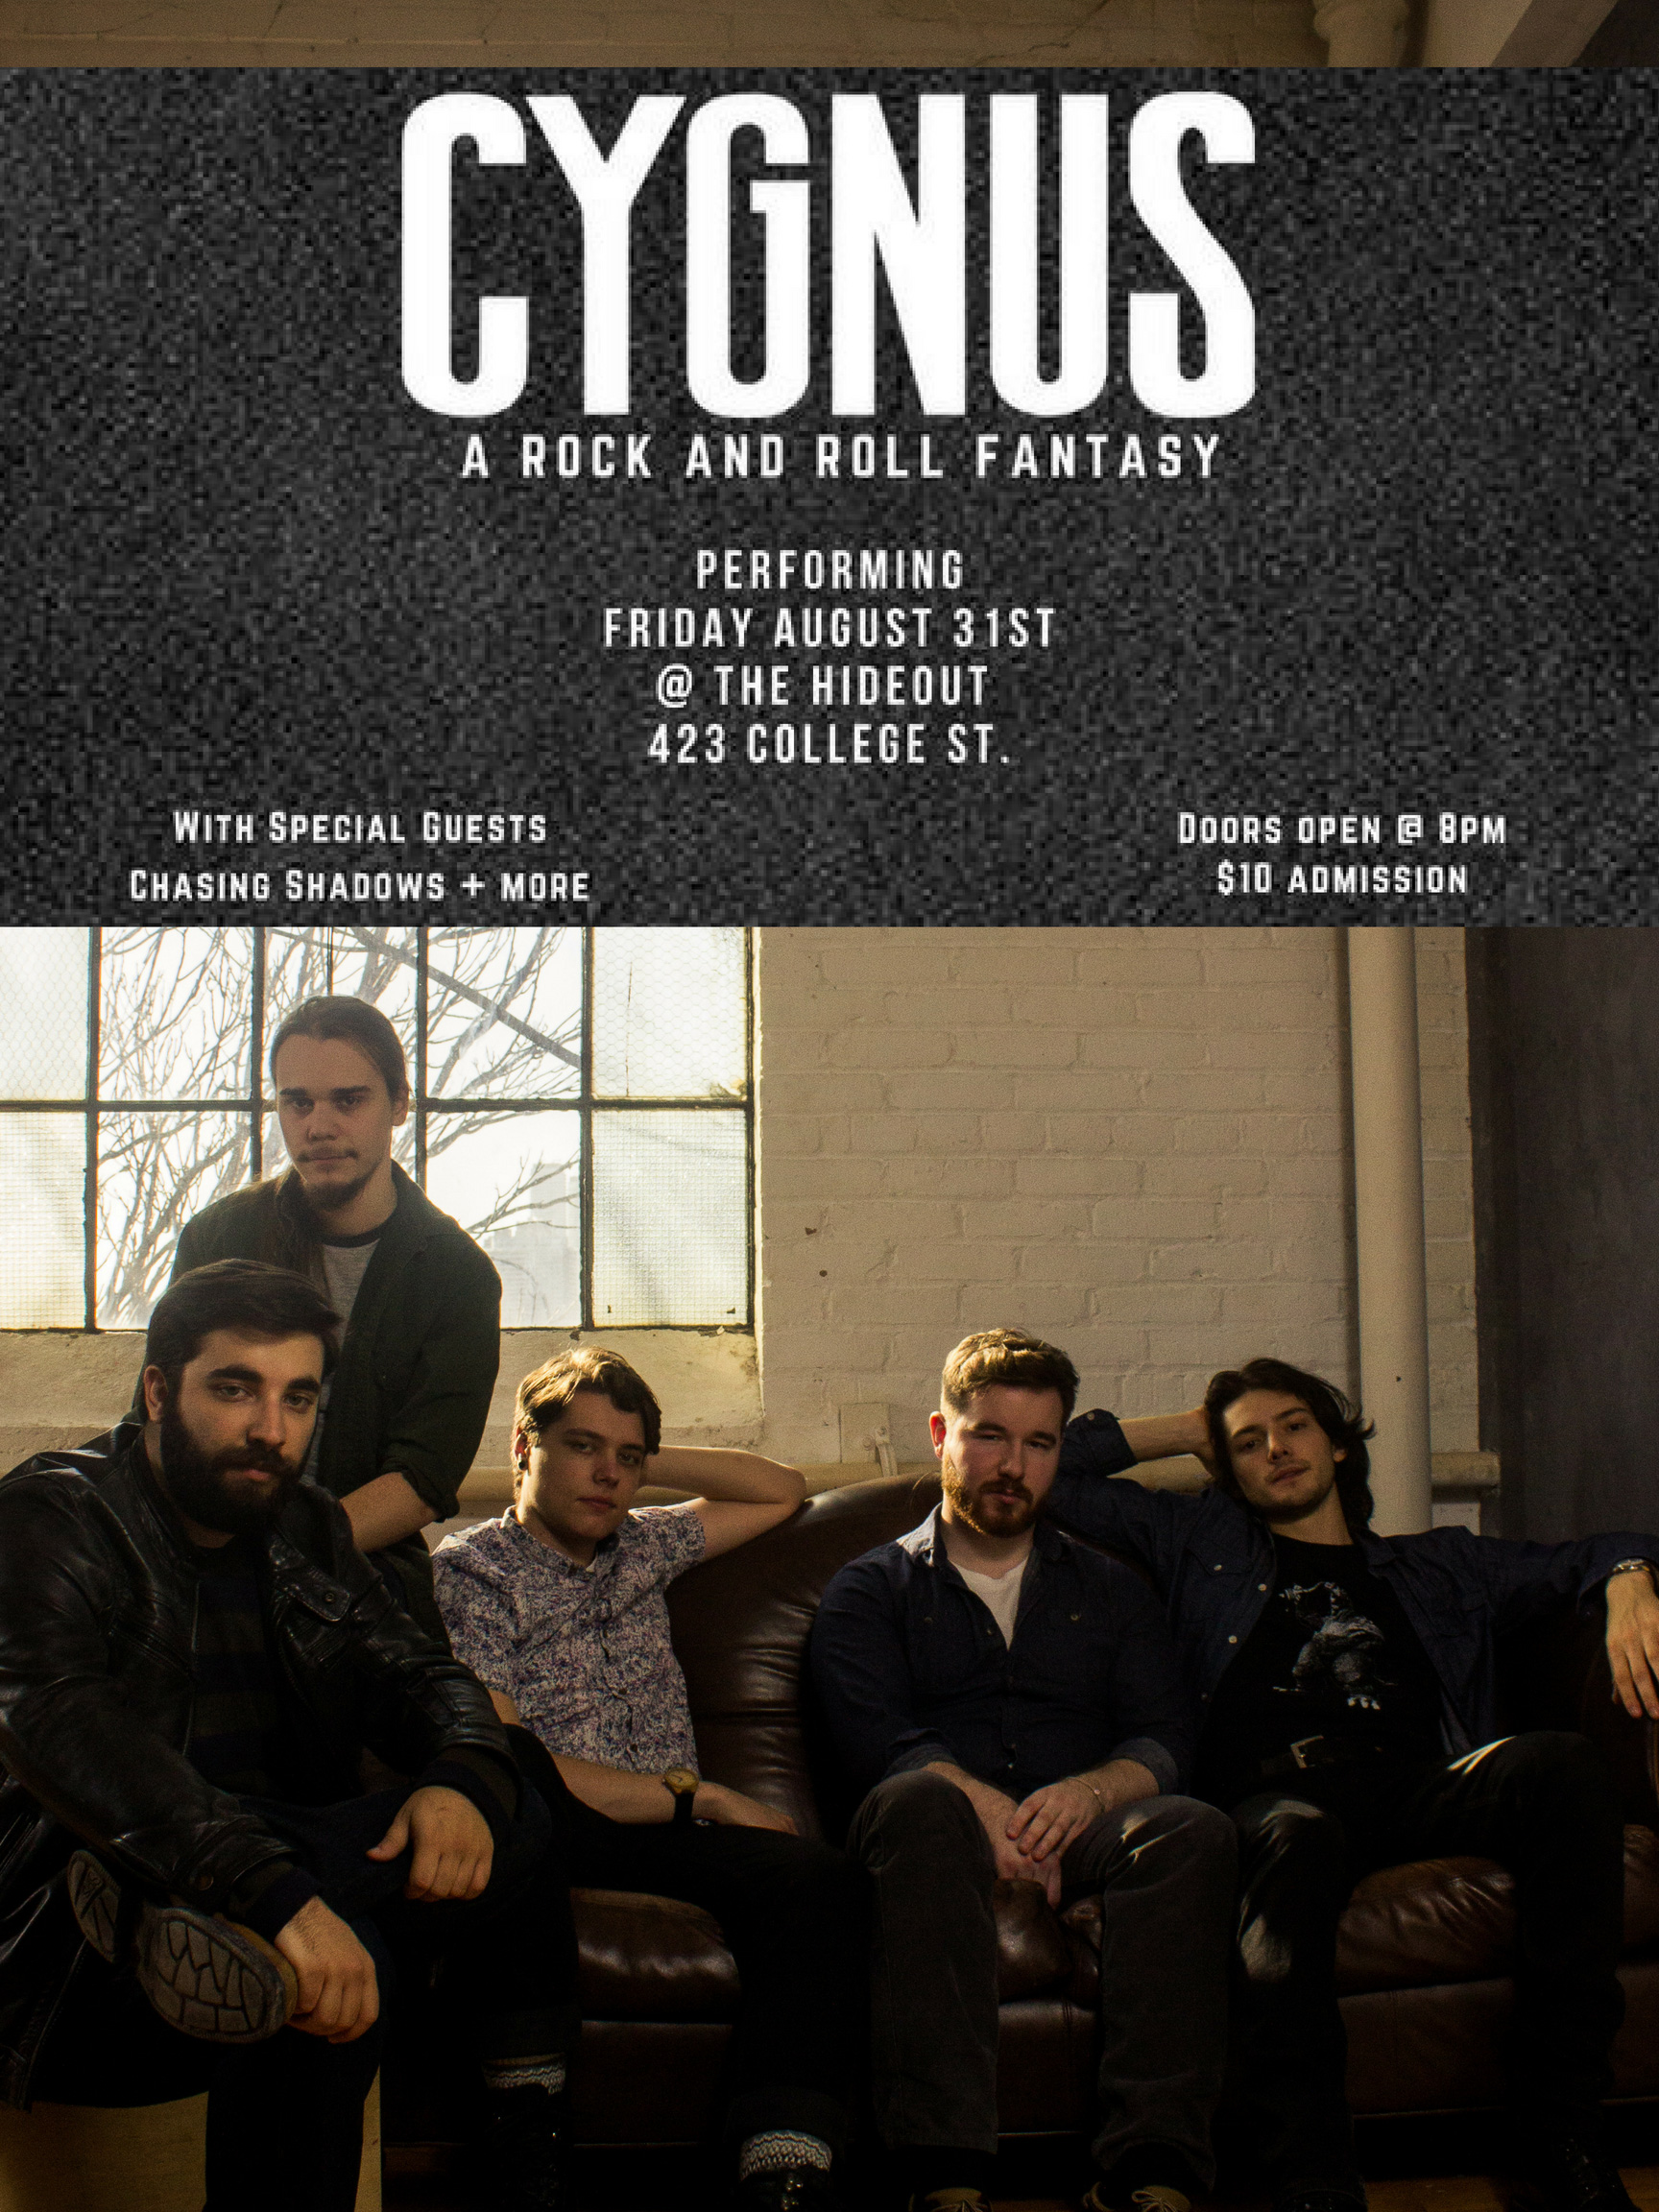 A show that promises to be a dramatic end to the summer. Toronto rock group, CYGNUS return to The Hideout with new music and surprise guests.  https://www.facebook.com/events/2214861965221019/